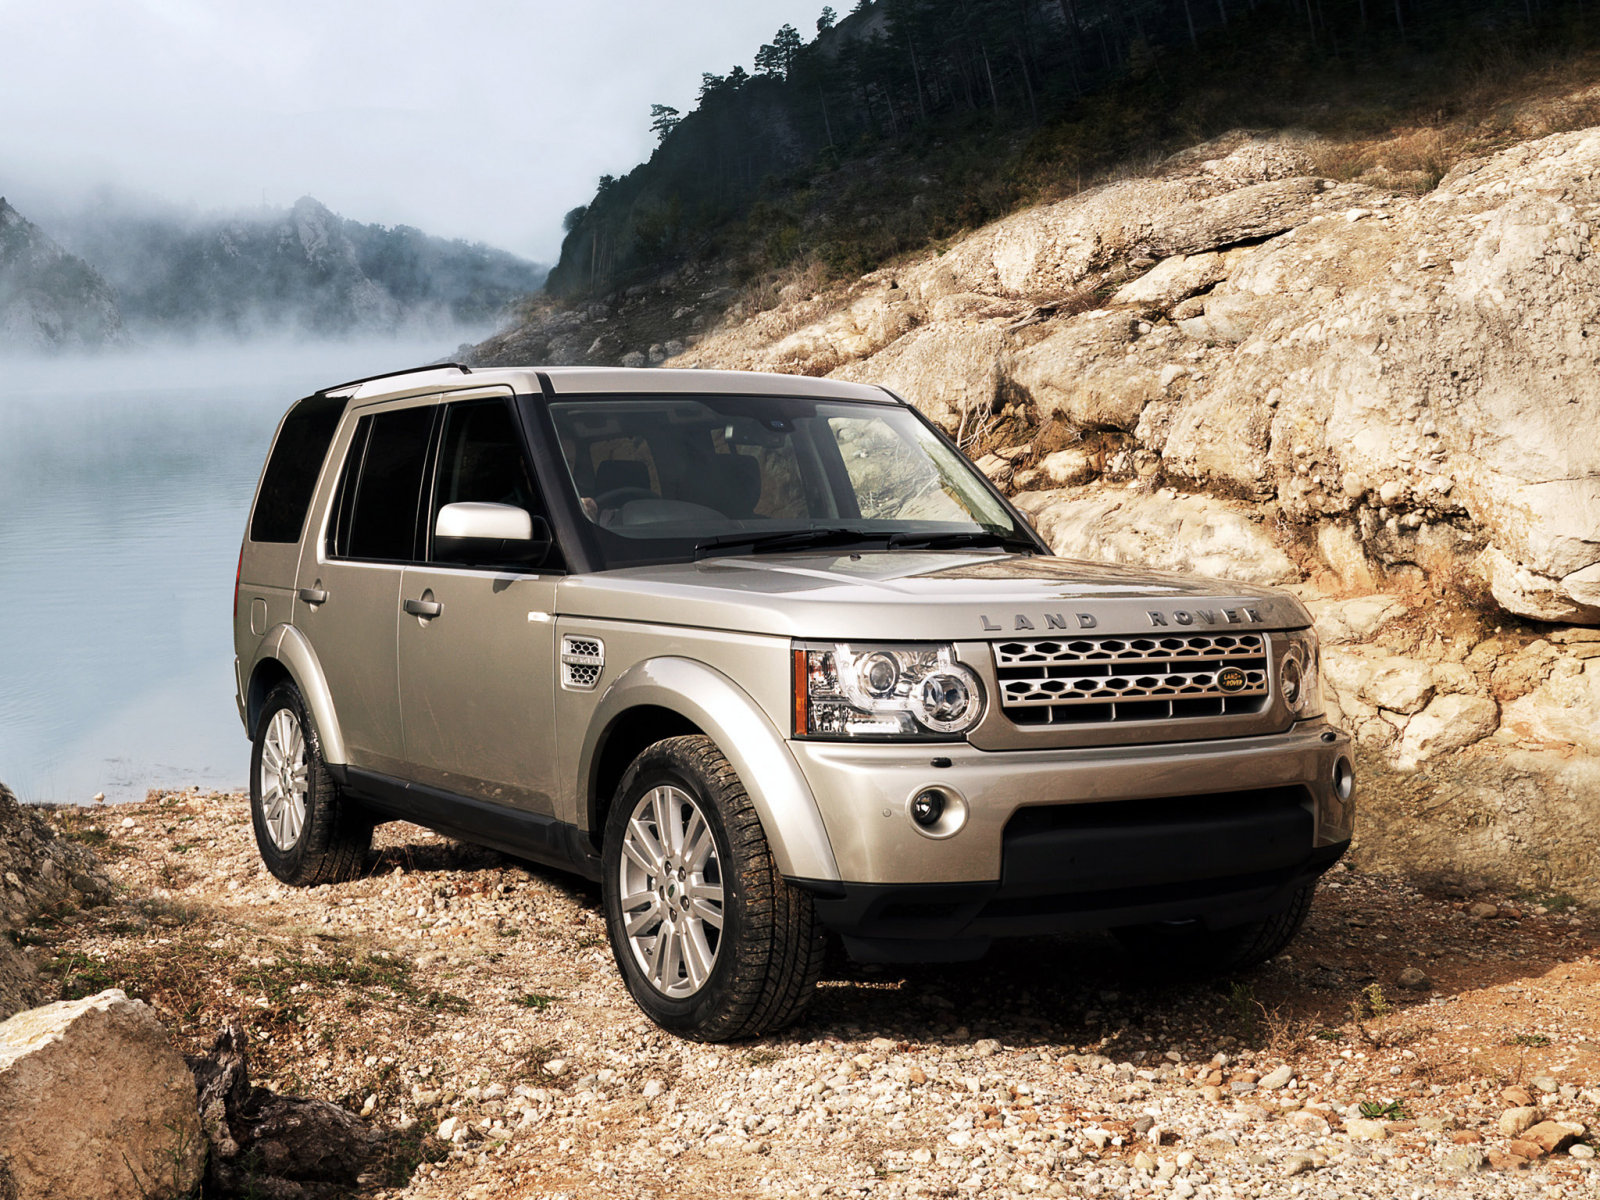 Land Rover: 9 фото